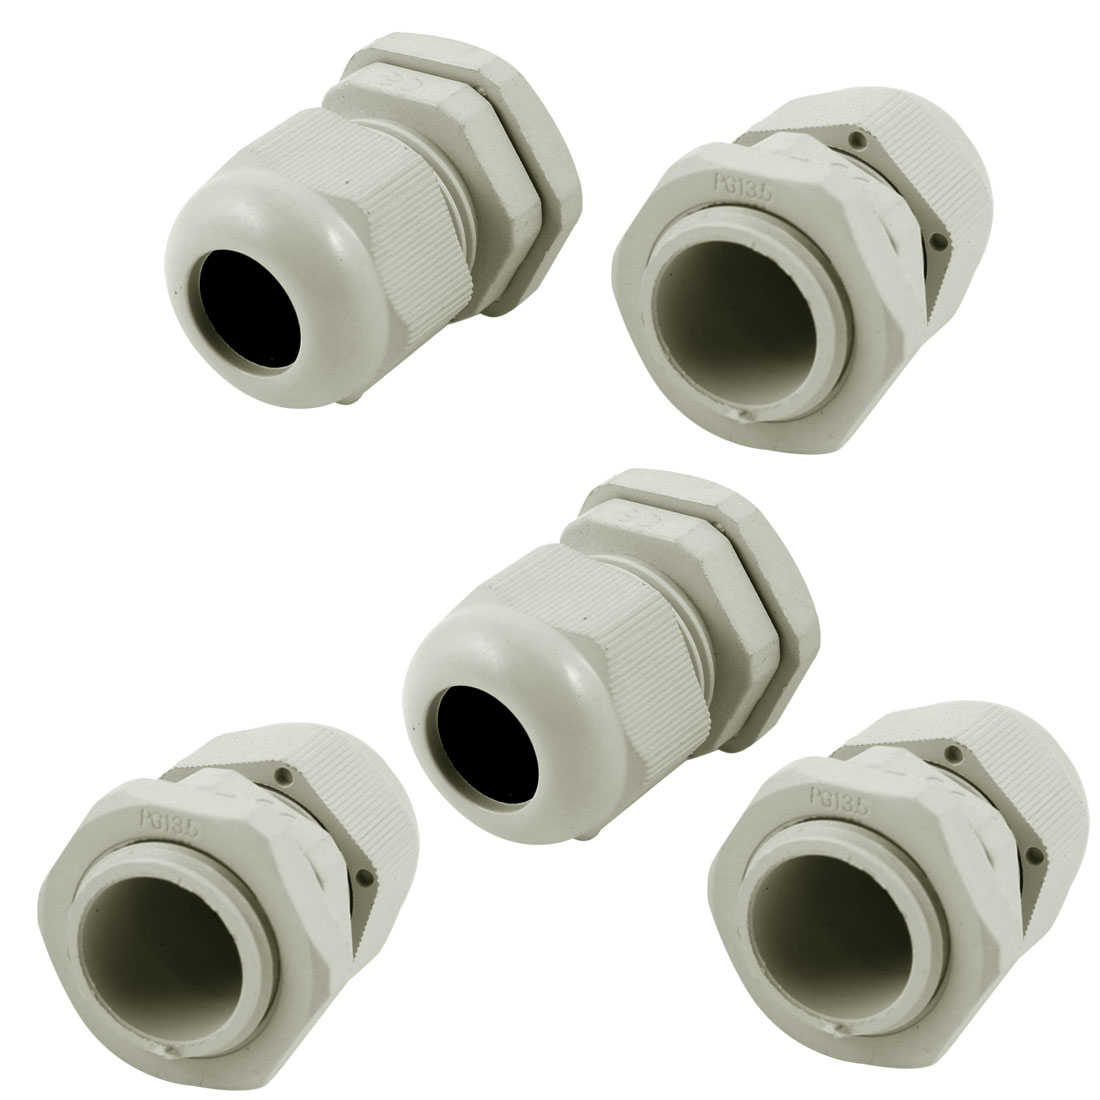 5 Pcs PG13.5 White Plastic Waterproof Connectors Cable Glands